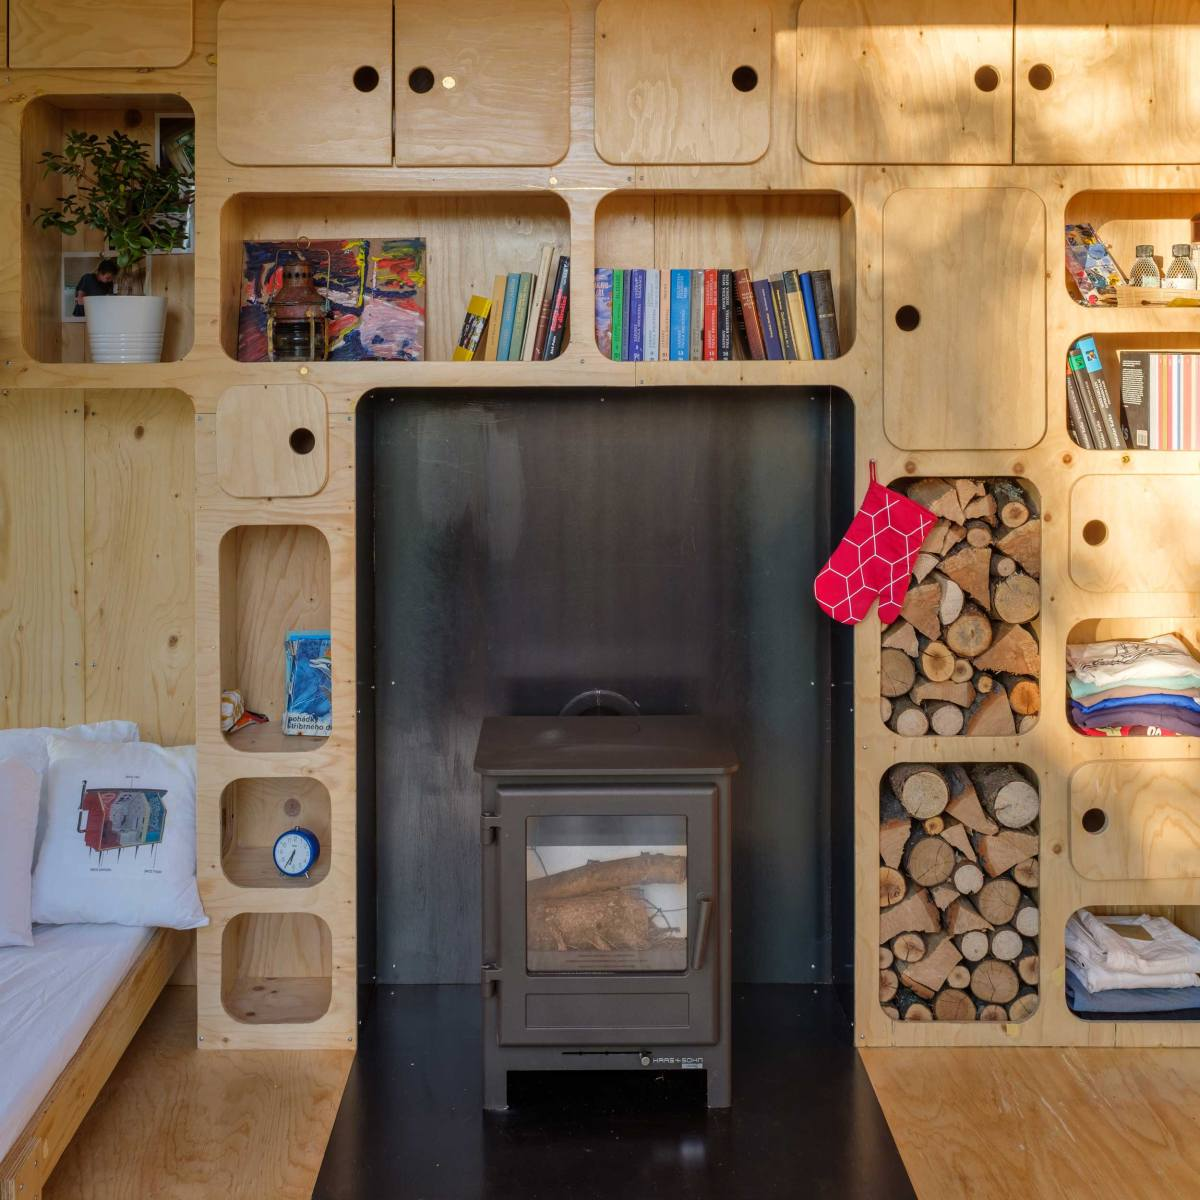 In the main indoor area there's room for a small wood-burning stove which adds a cozy touch to the design